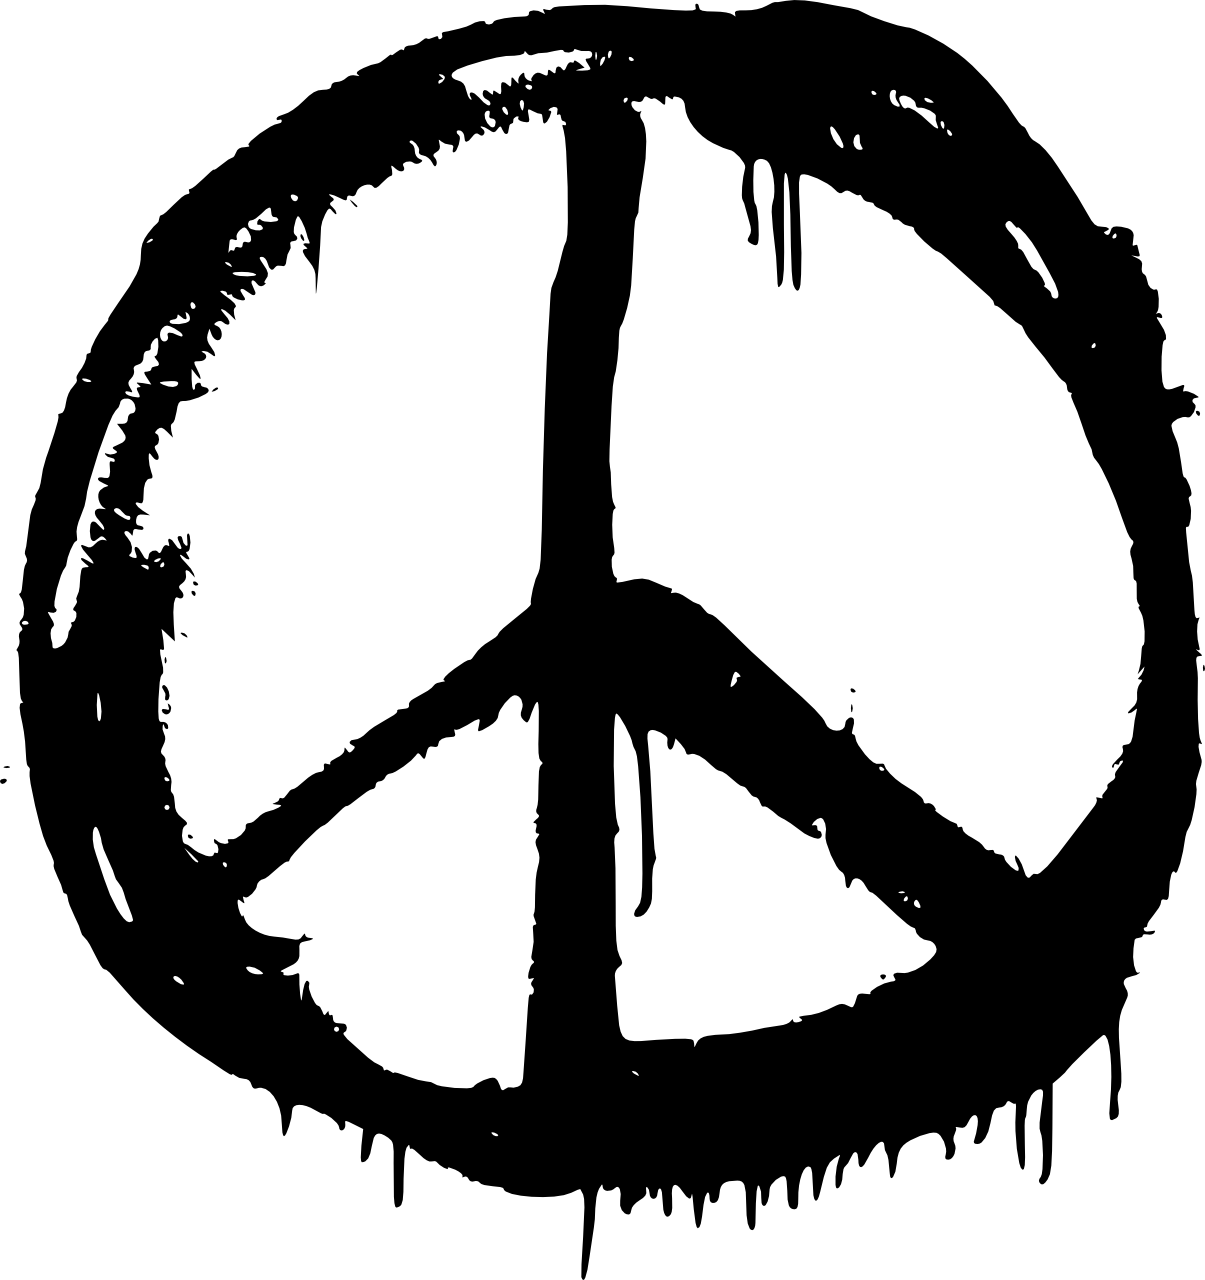 The meaning and symbolism of the word peace v75 peace high resolution wallpaper biocorpaavc